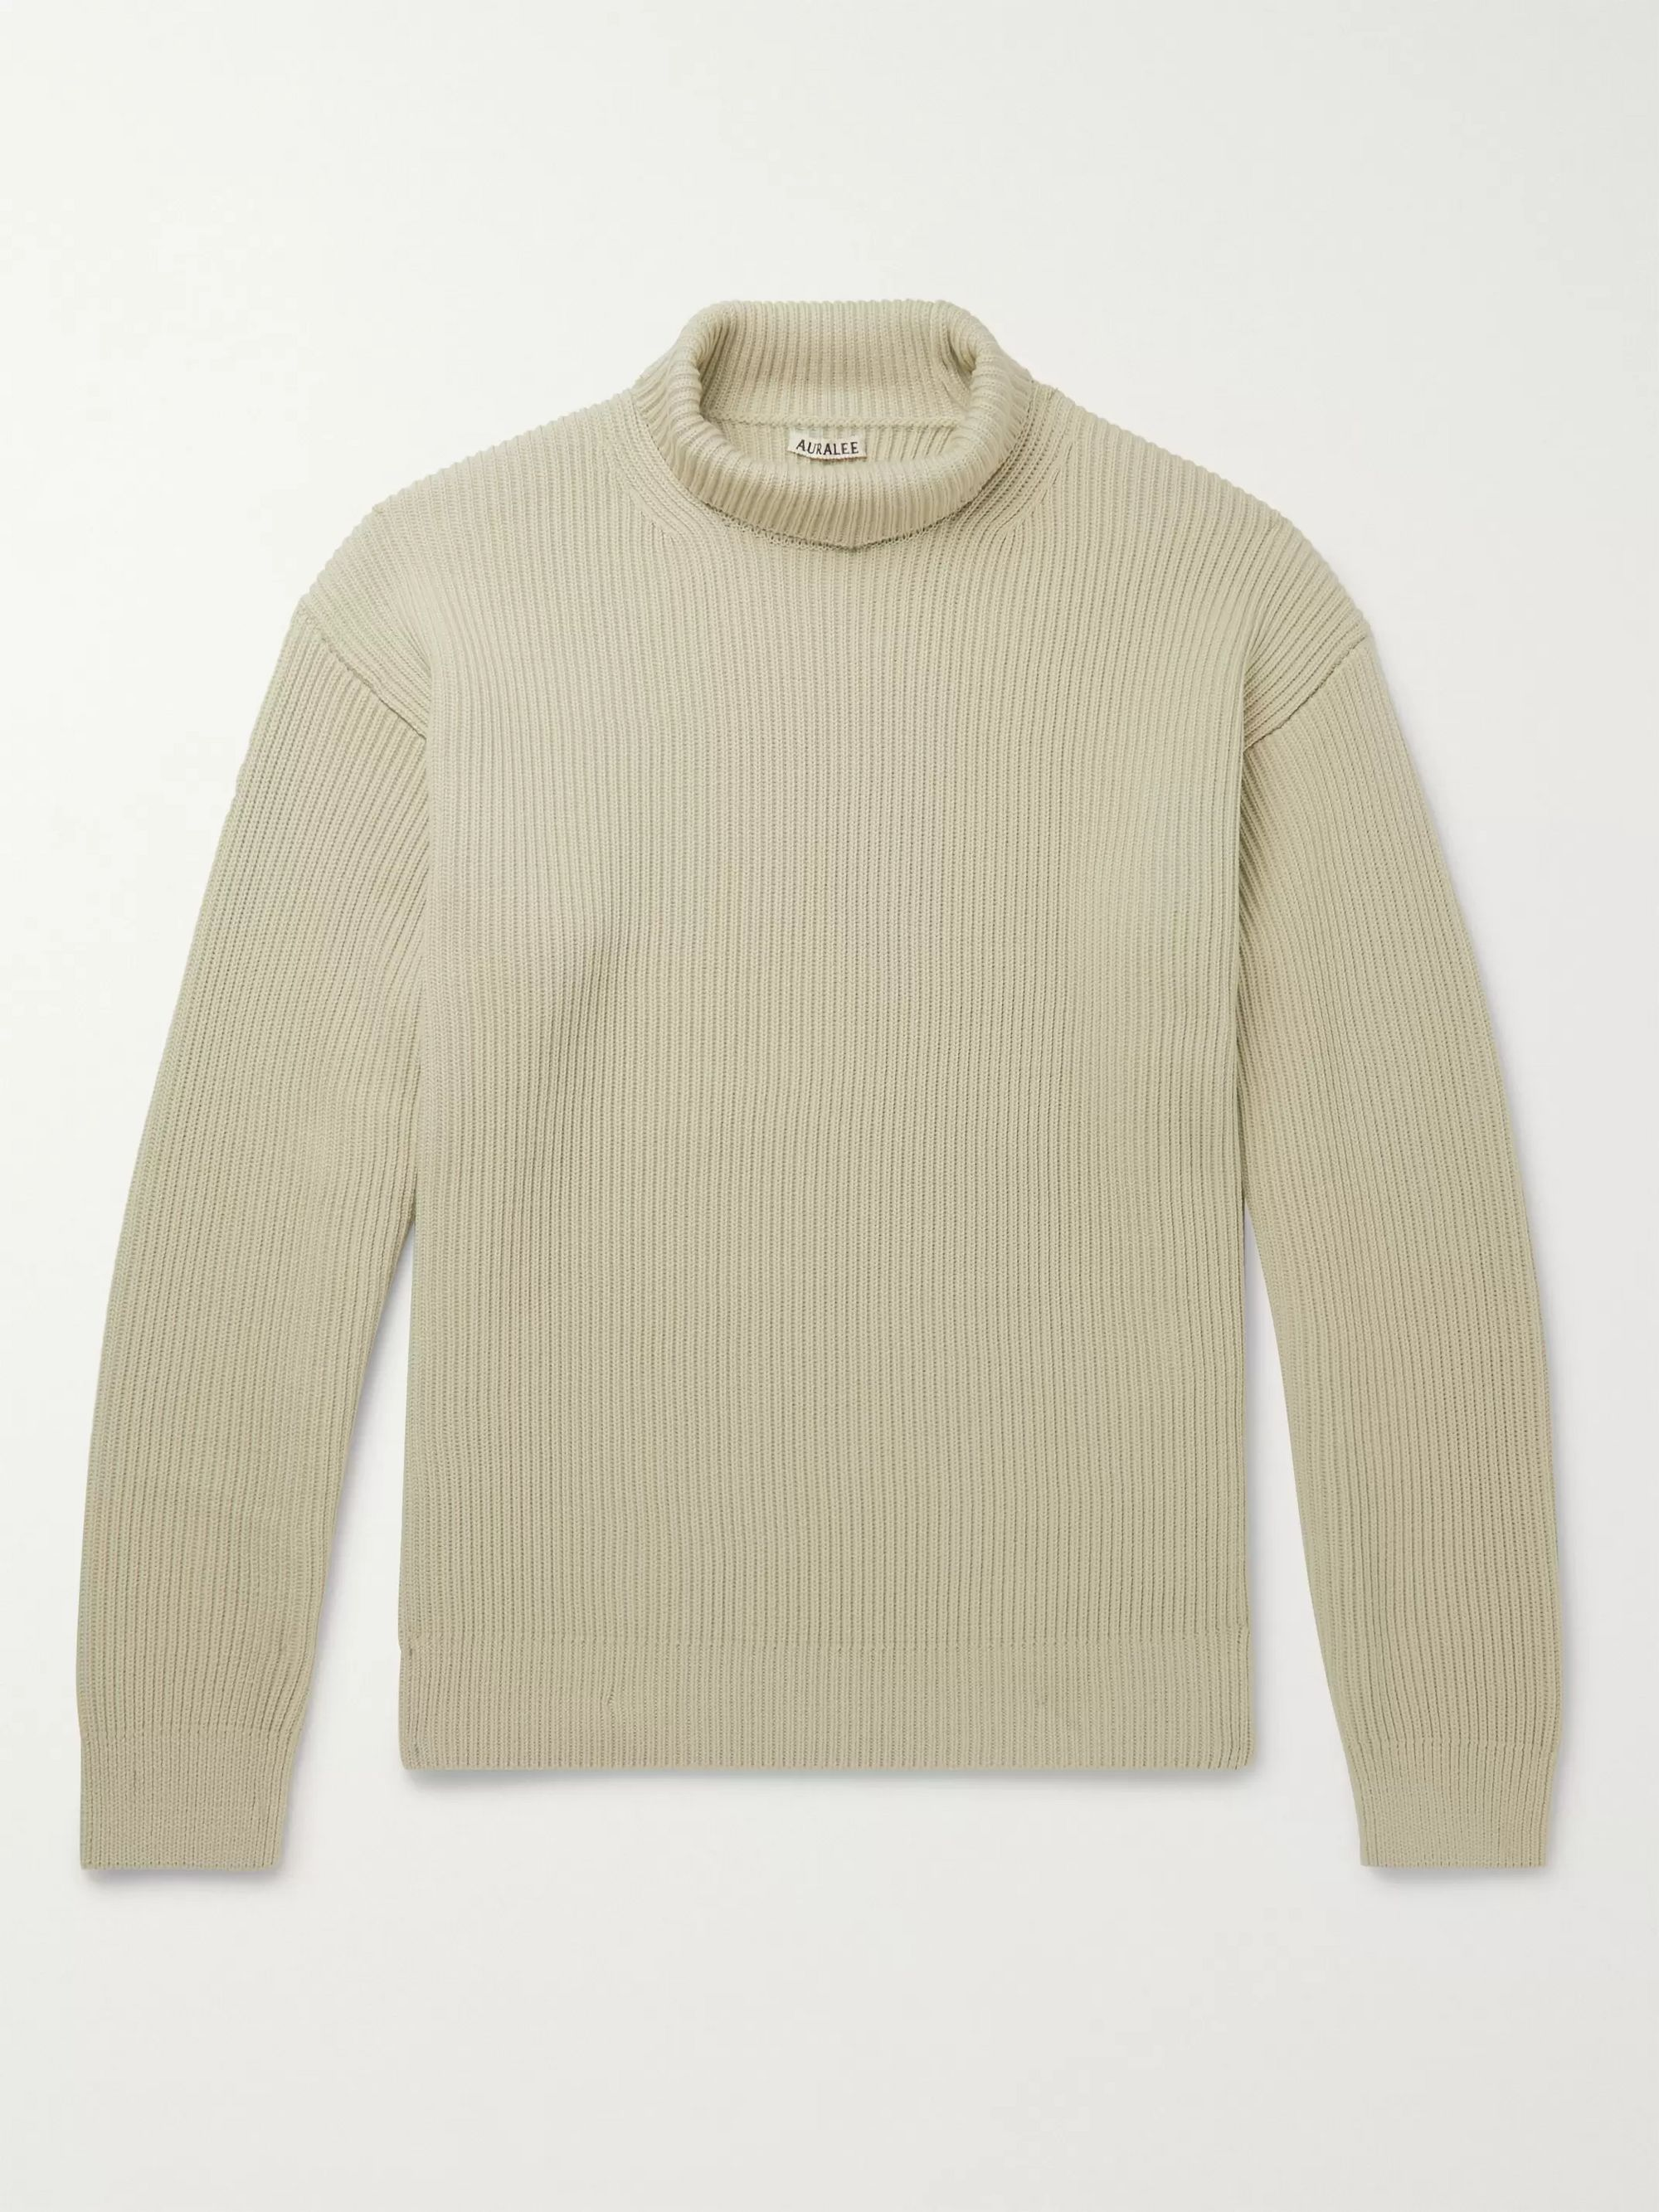 Ribbed Wool Rollneck Sweater by Auralee